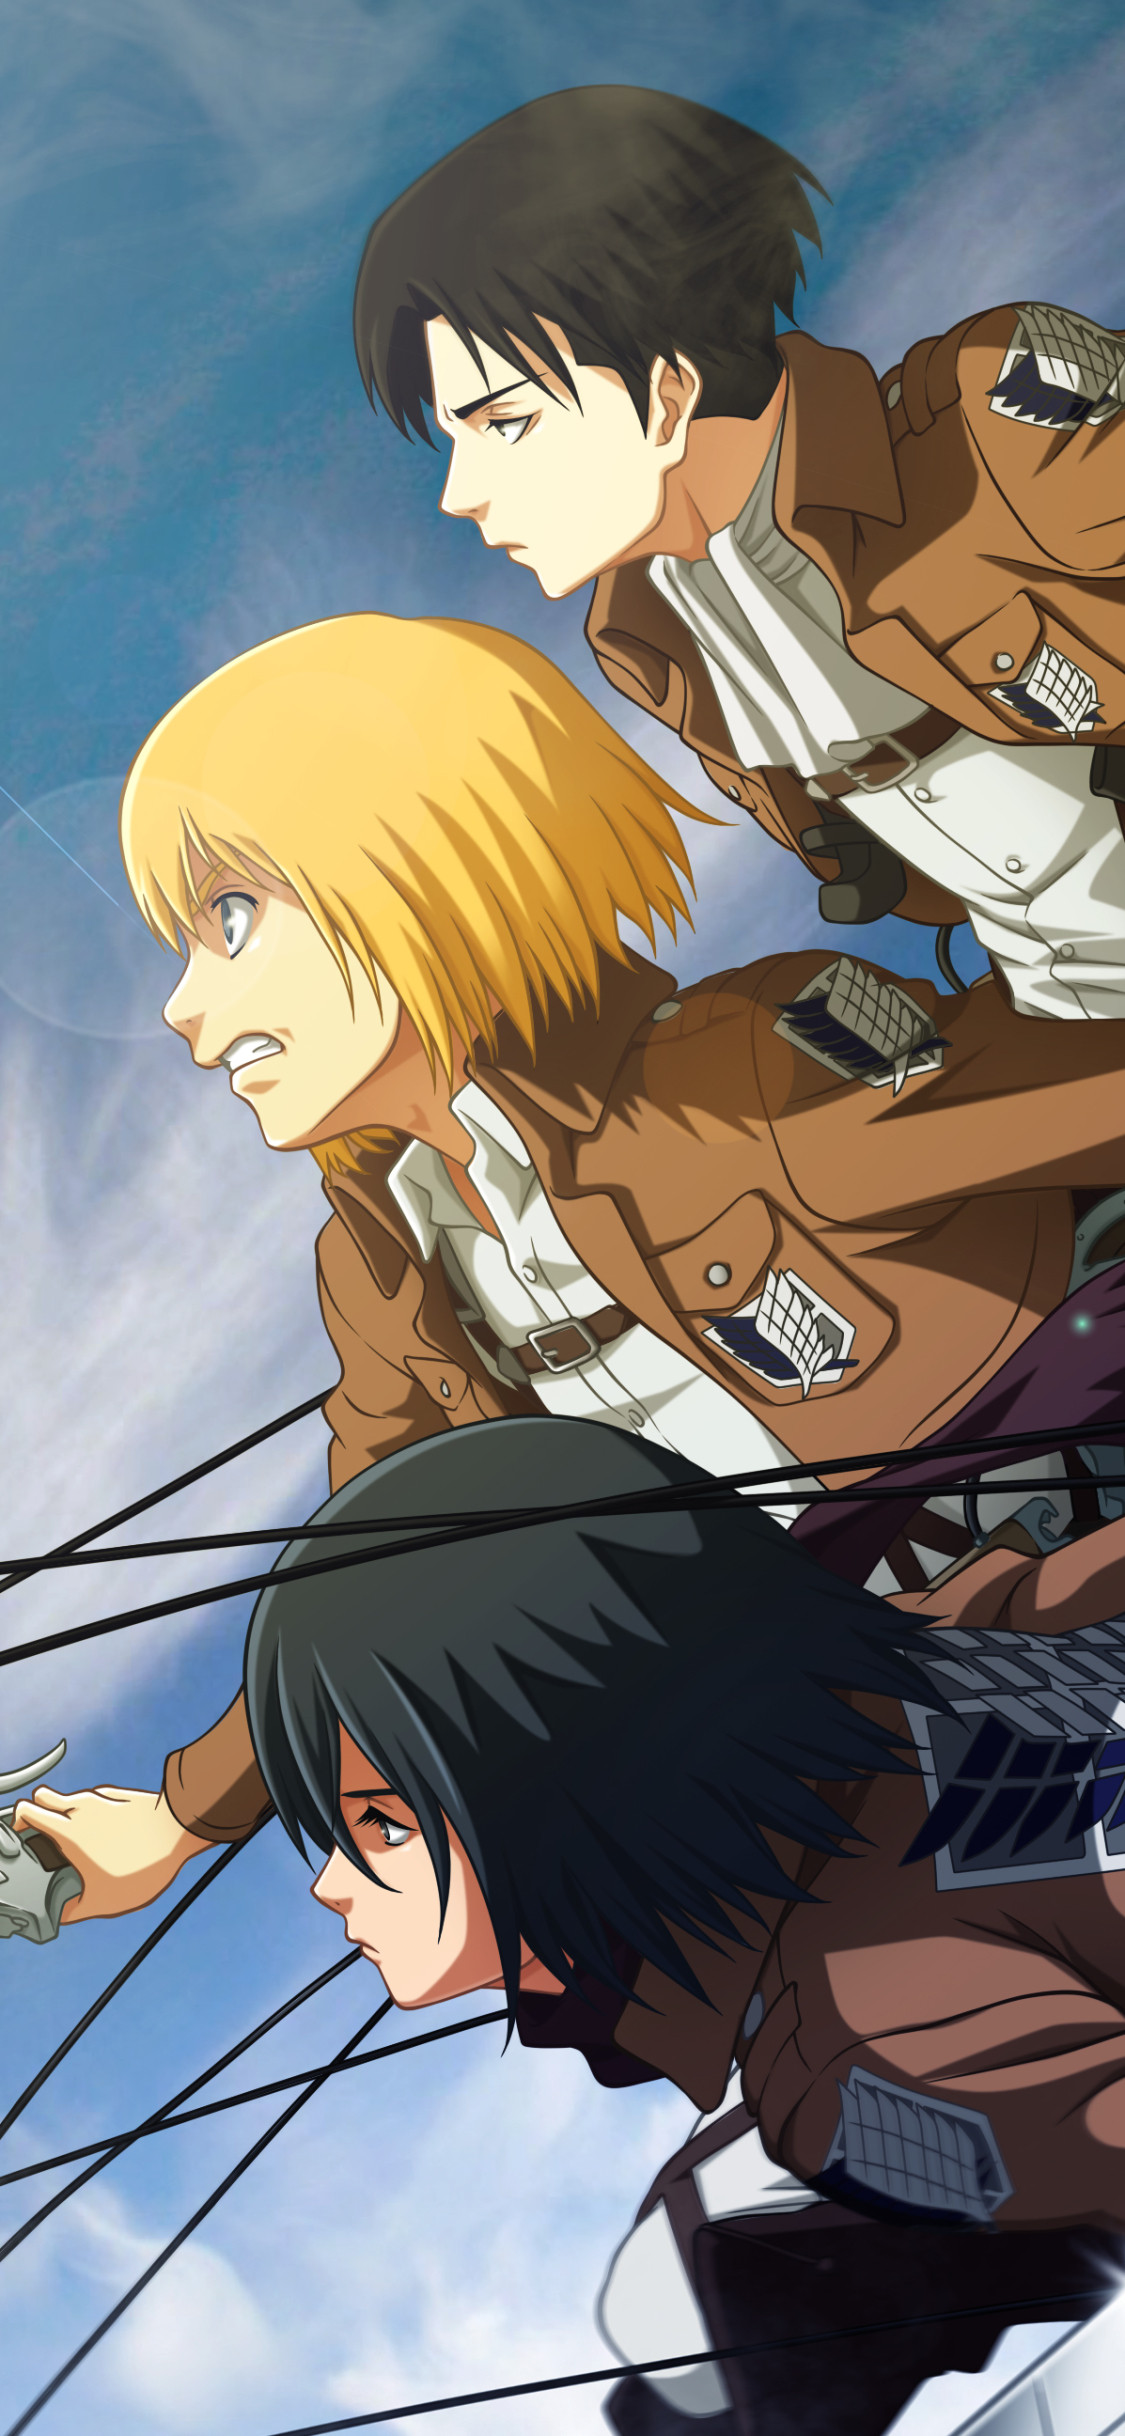 Anime Attack On Titan 1125x2436 Wallpaper Id 850779 Mobile Abyss